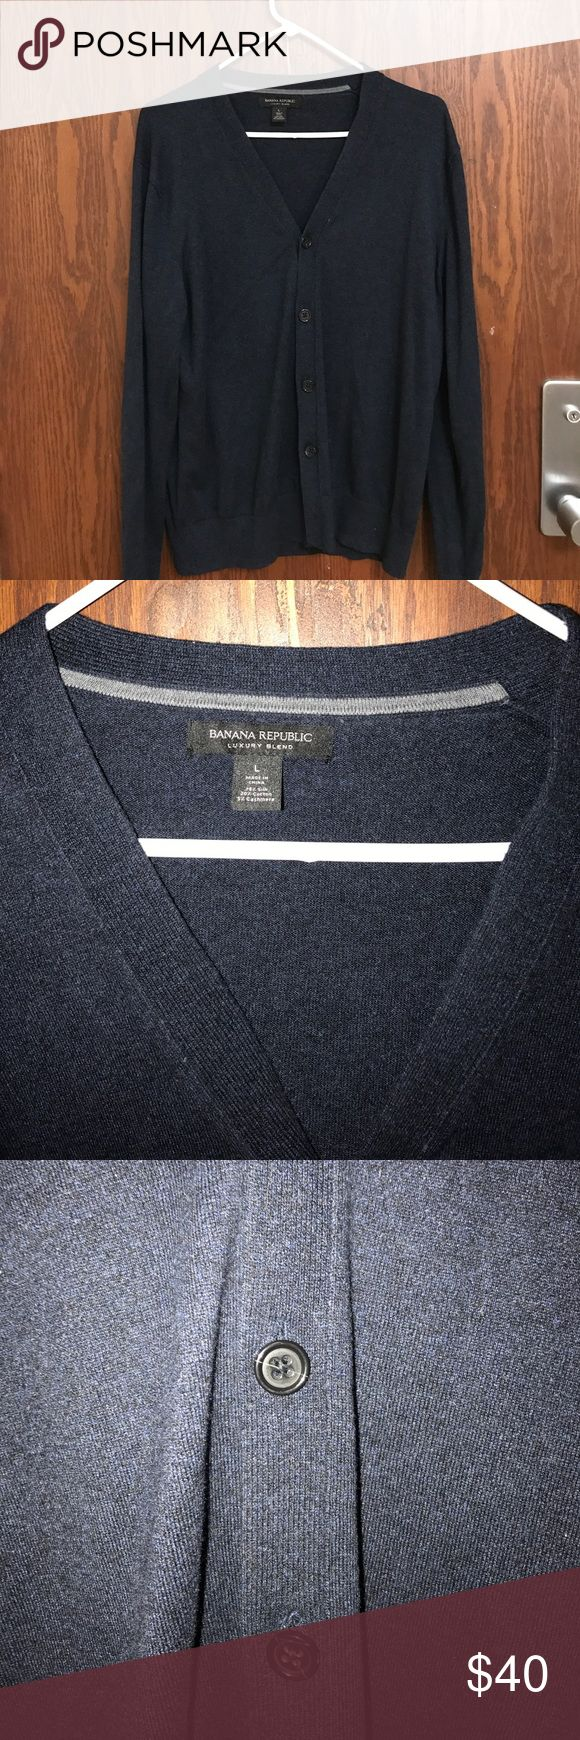 Blue Banana Republic Cardigan This is a great 75% silk, 25% cotton and 5% cashmere cardigan that's a large from BR. It's definitely a slimmer fit but a great fit for those guys looking for not a giant cardigan but not one too tight. Worn only twice, cardigans aren't for me Banana Republic Sweaters Cardigan